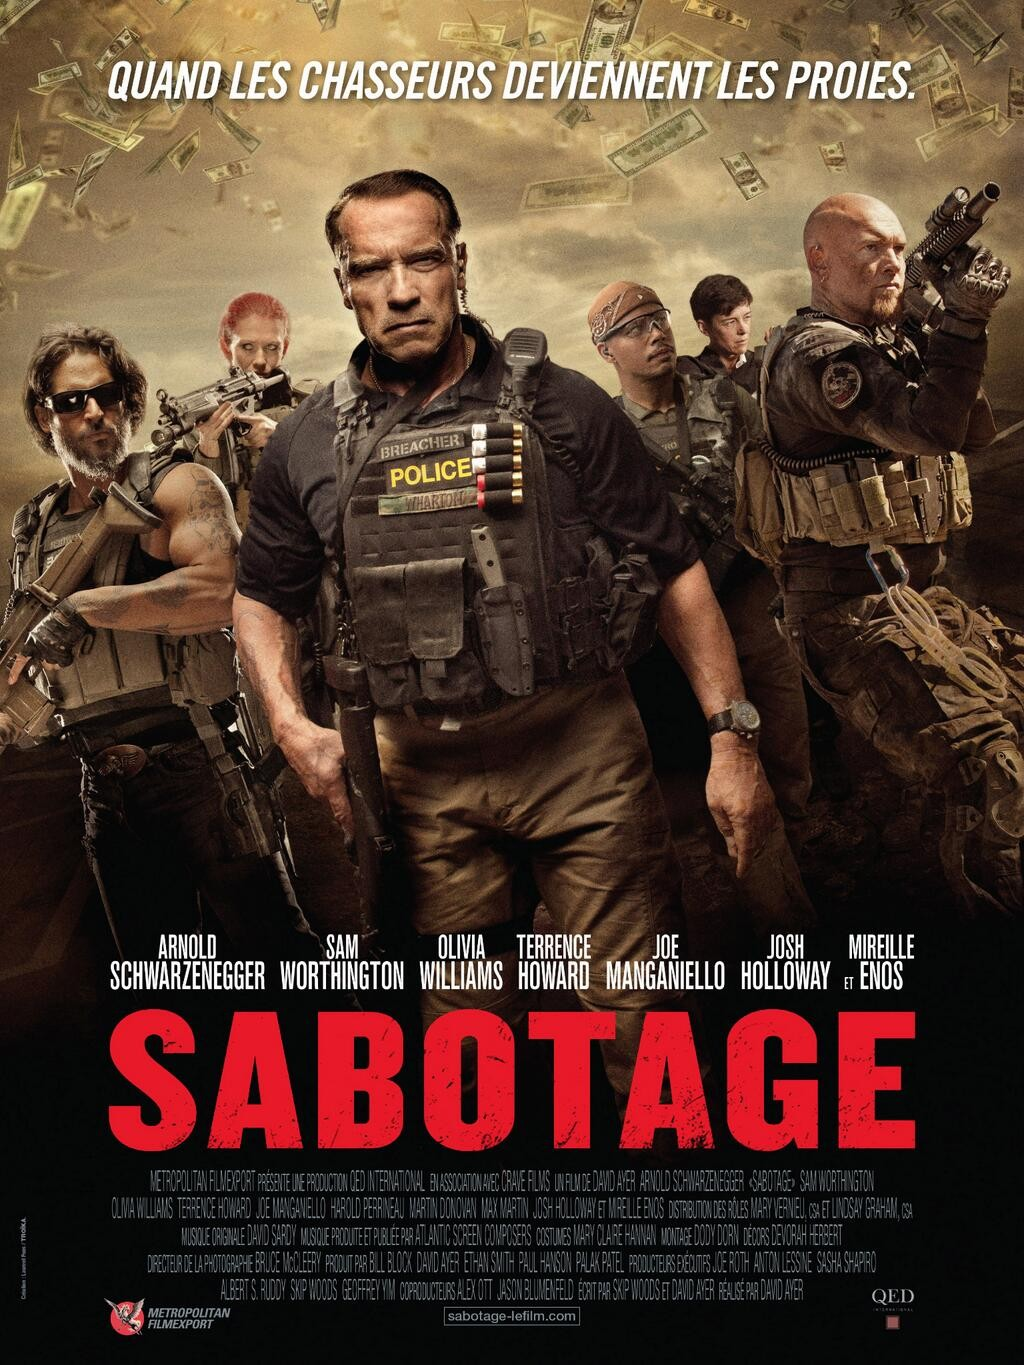 Sabotage-Official Poster Banner PROMO XLG-20MARCO2014